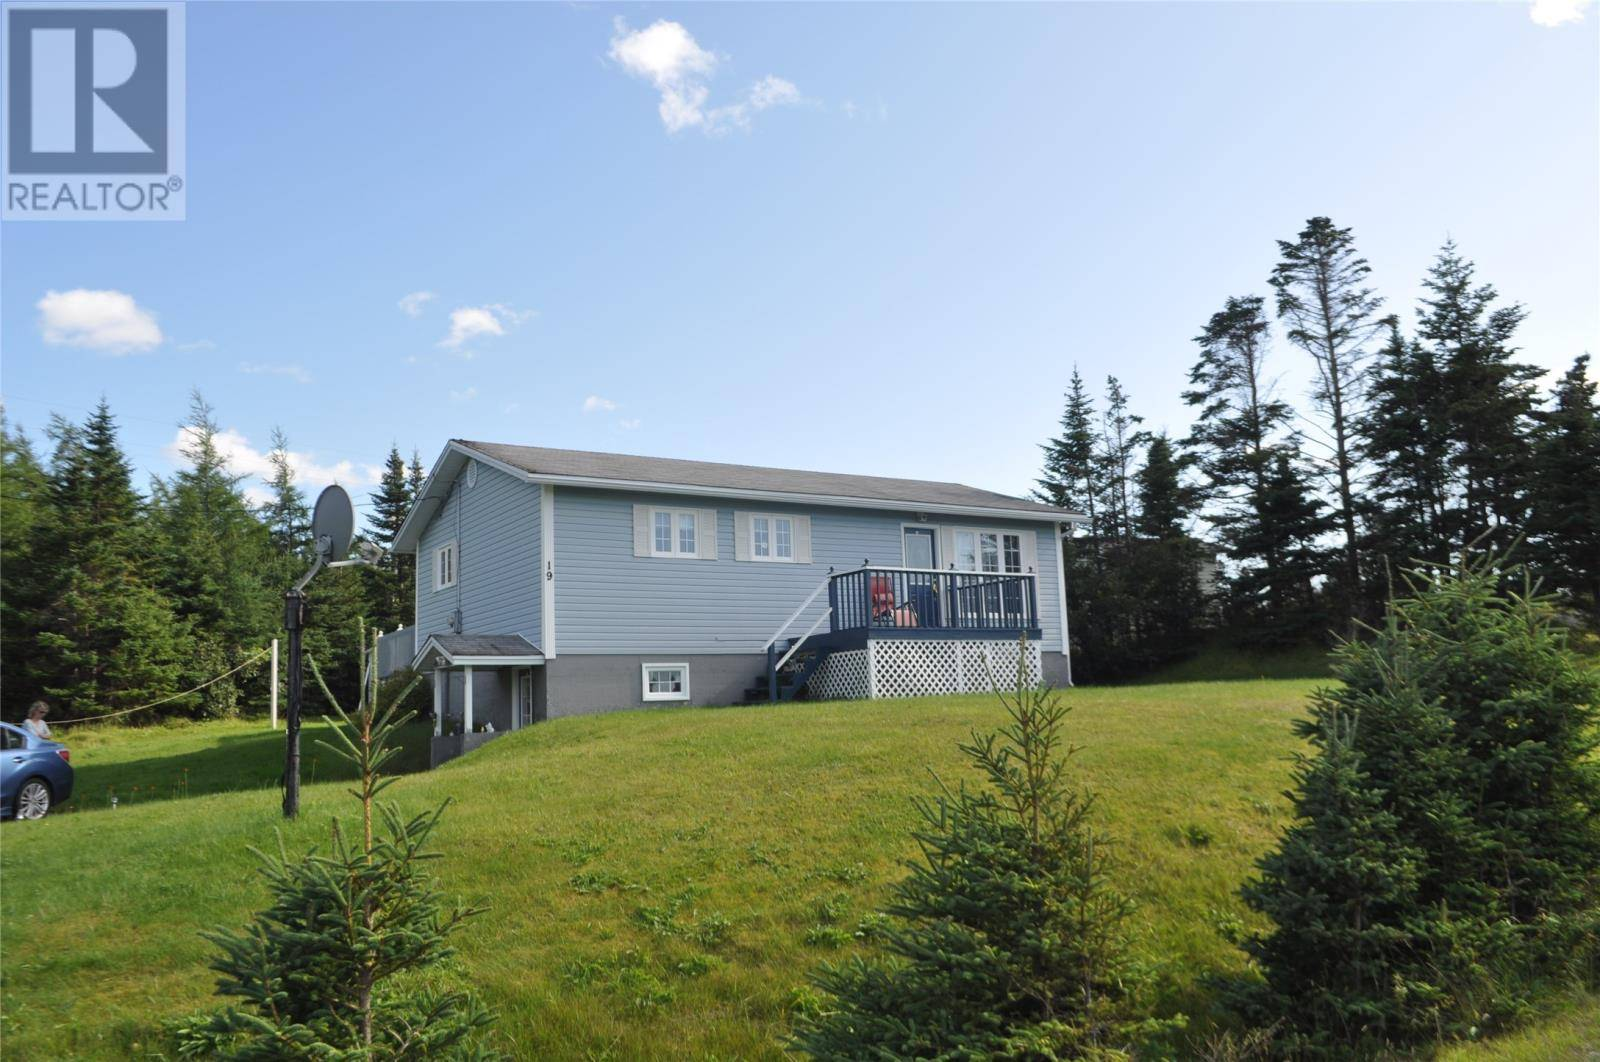 House for sale at 19 Main Rd Route 90, Forest Field Newfoundland - MLS: 1202641